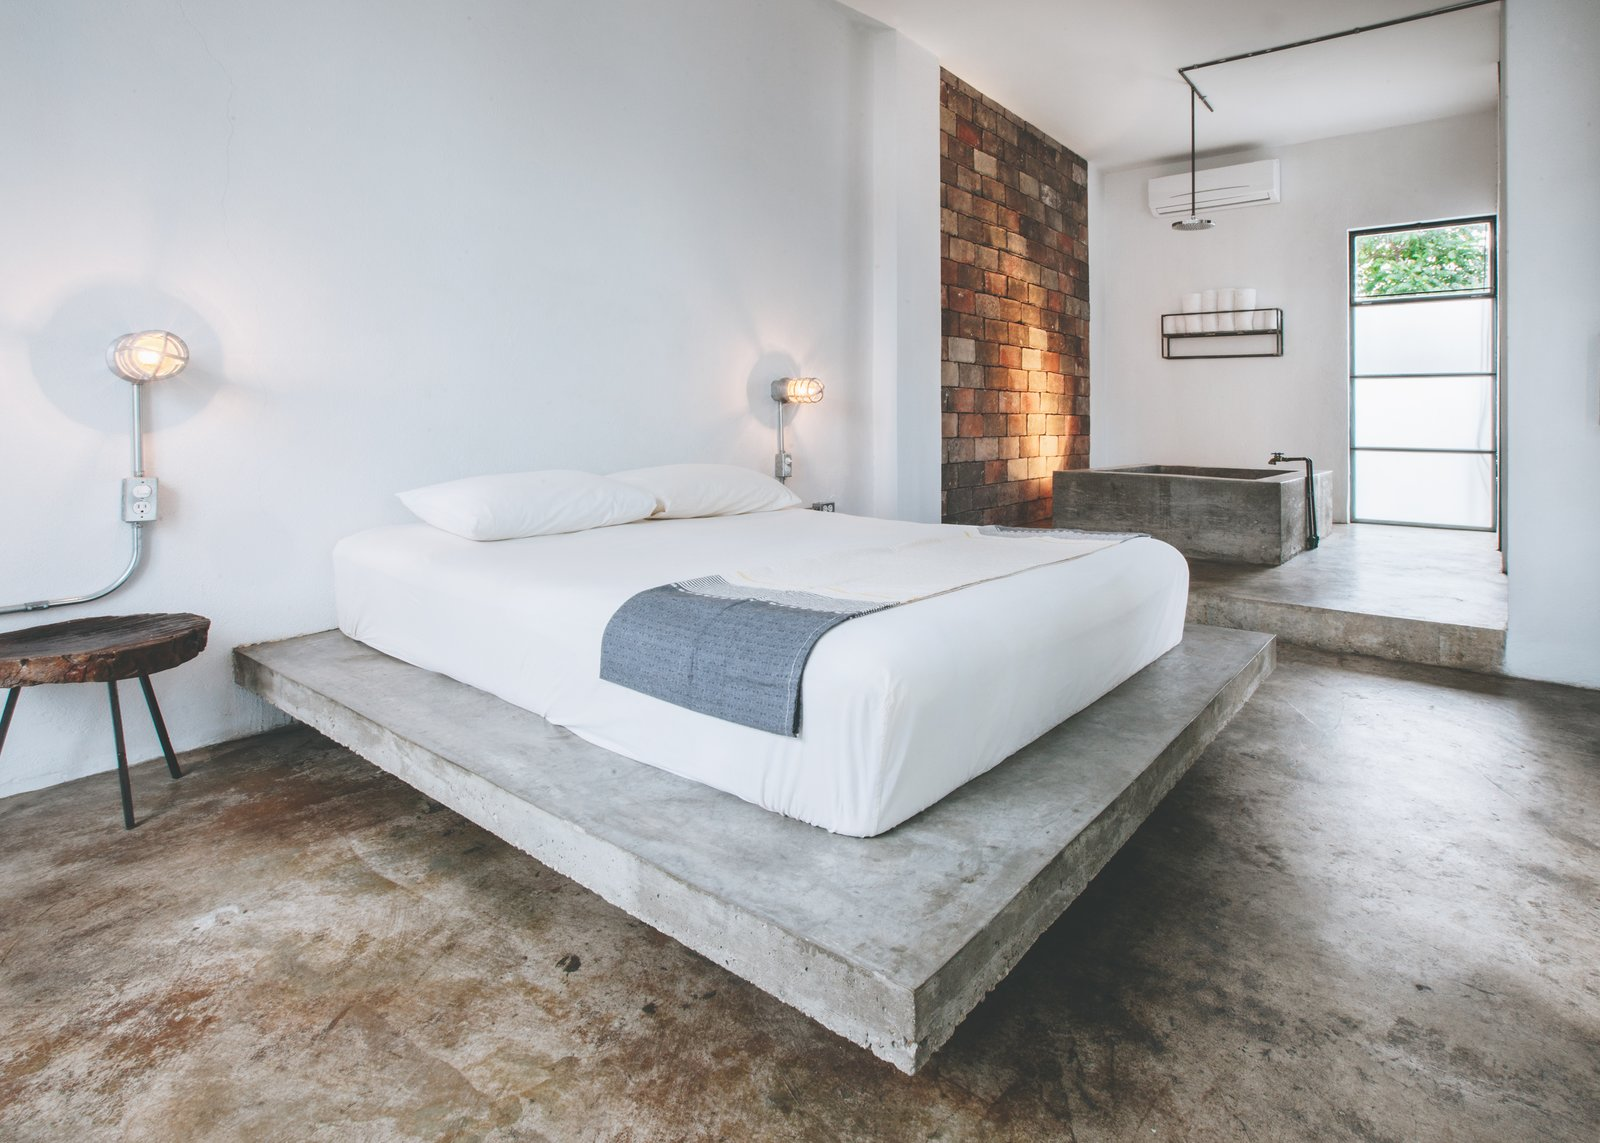 Bedroom, Bed, Accent, Wall, Night Stands, Lamps, and Concrete A 270-square-foot guest room includes a poured concrete tub with a rainhead shower.   Best Bedroom Bed Concrete Wall Night Stands Photos from Become a Hotelier in a Surfer's Paradise With This Chic Boutique Property Asking $2.6M